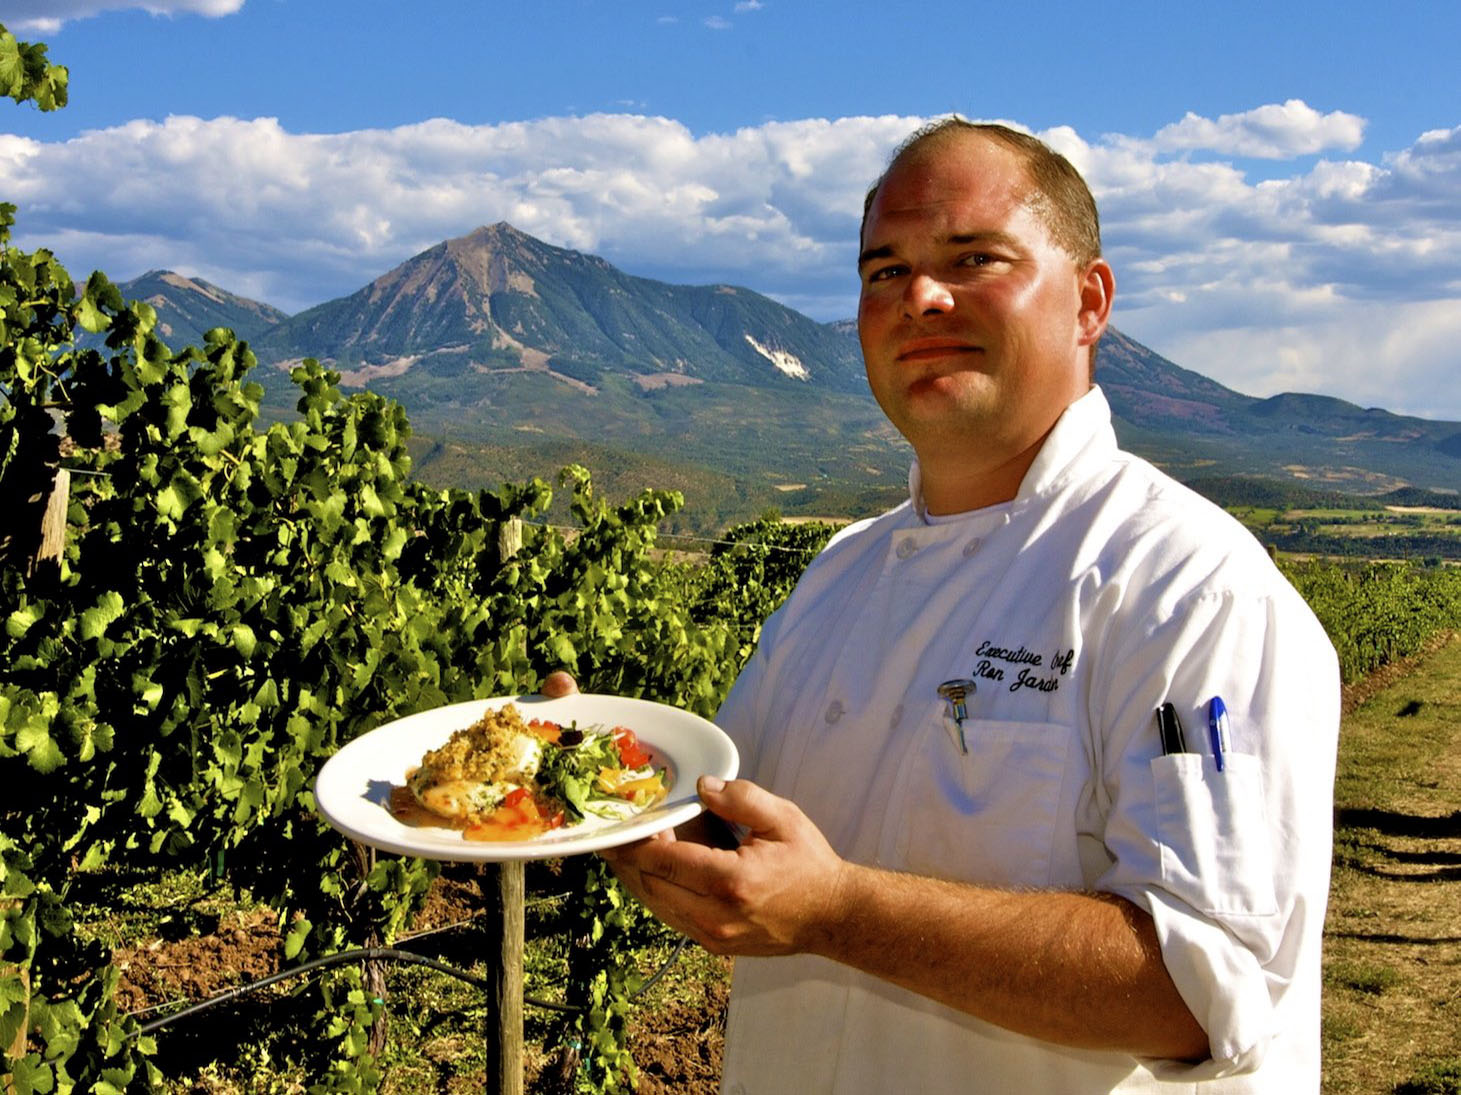 Chef Ron Jardon with food from a winemaker's dinner at Stone Cottage Cellars in Paonia Colorado